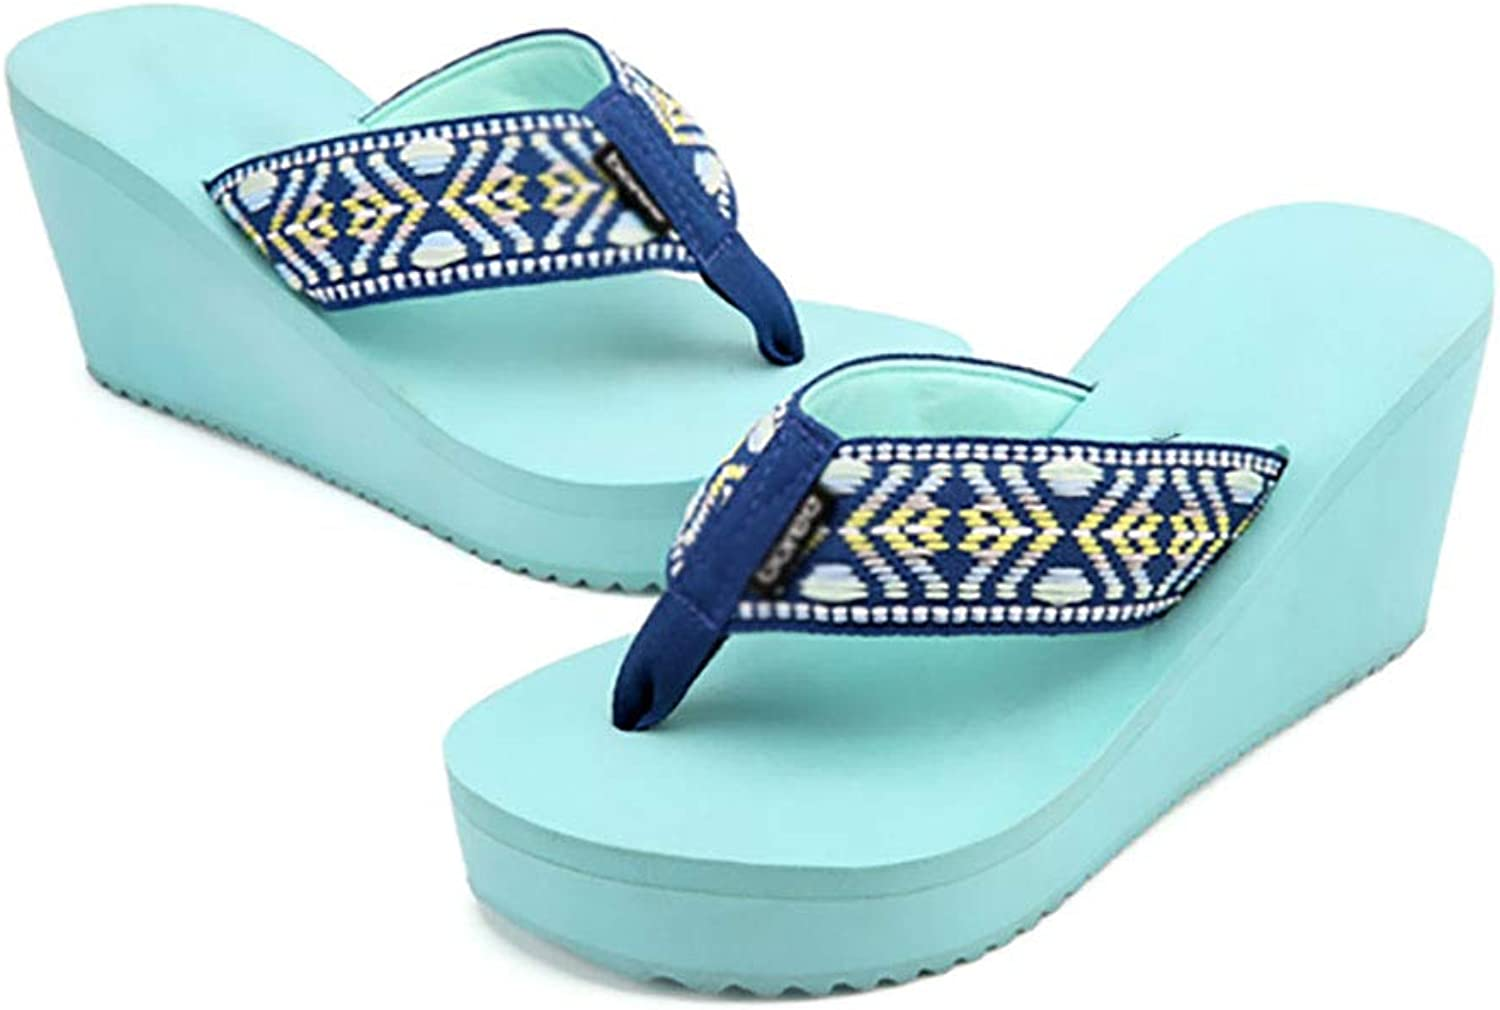 HUYP bluee Fashion Flip Flops Female Summer Girl Wear Increased Anti-Slip Sandals and Slippers (Size   5.5 US)